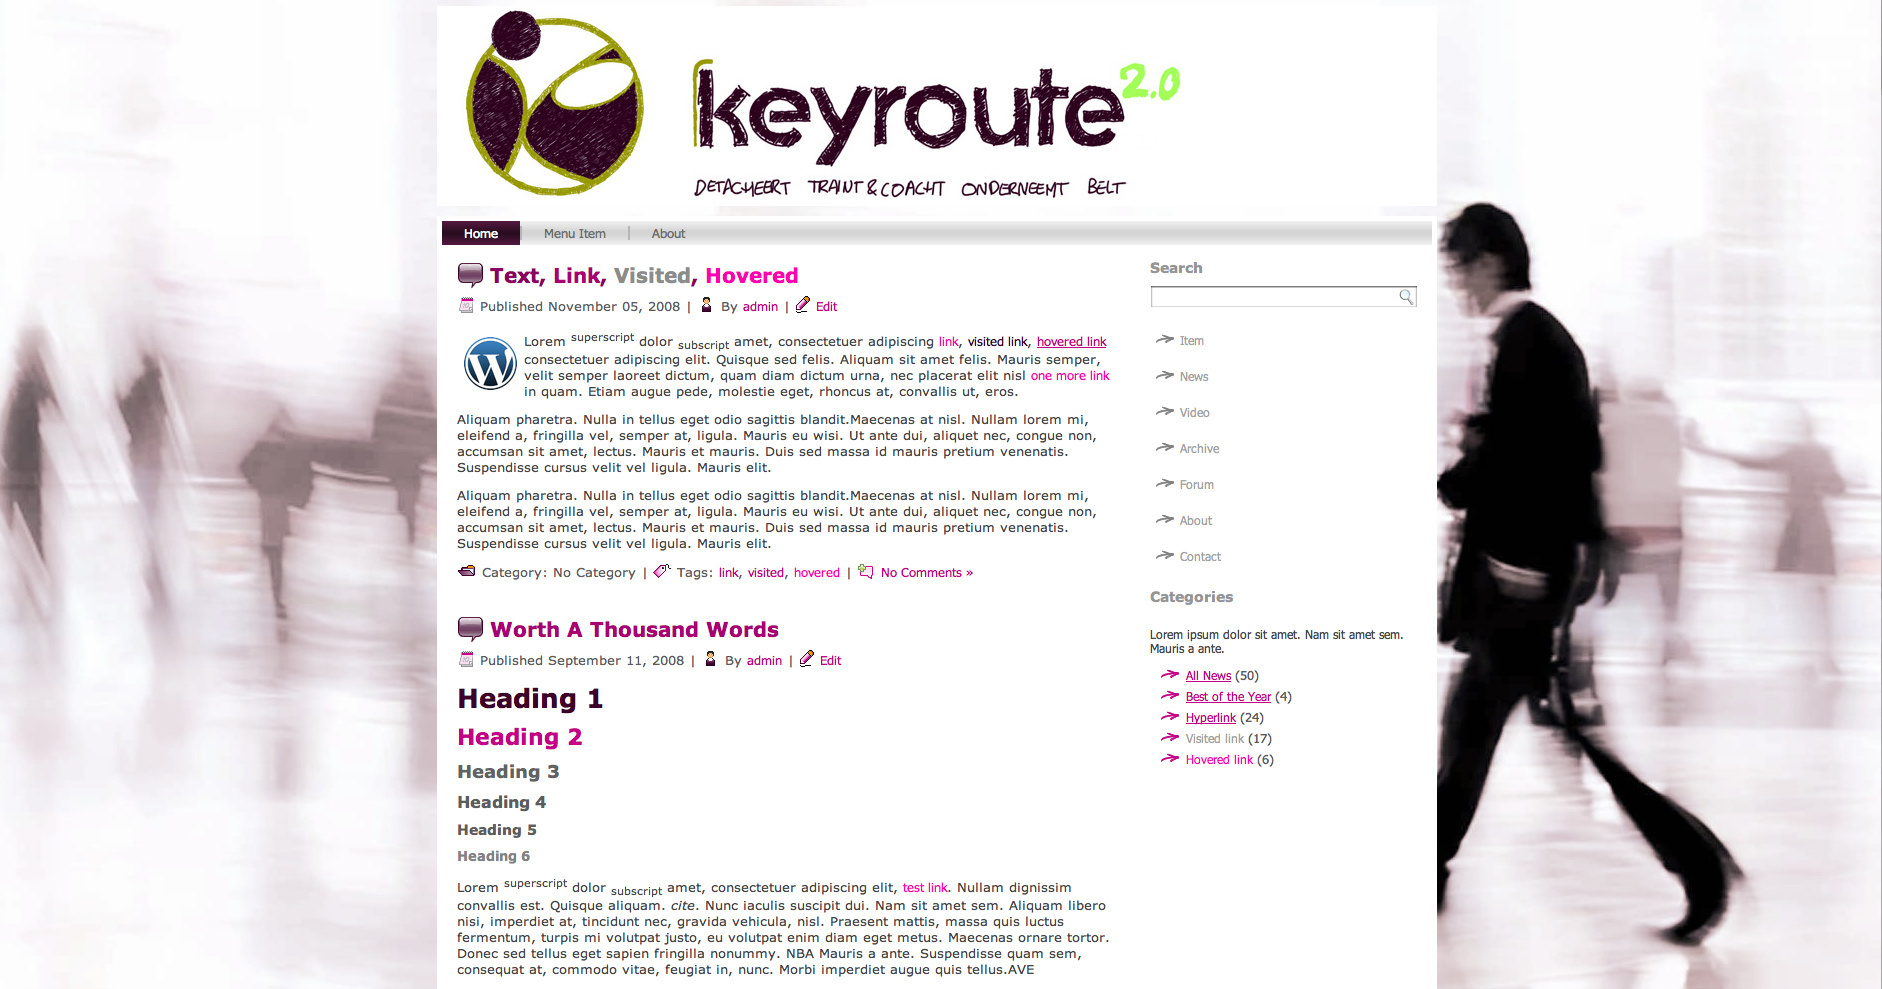 Template design for Keyroute in Wordpress